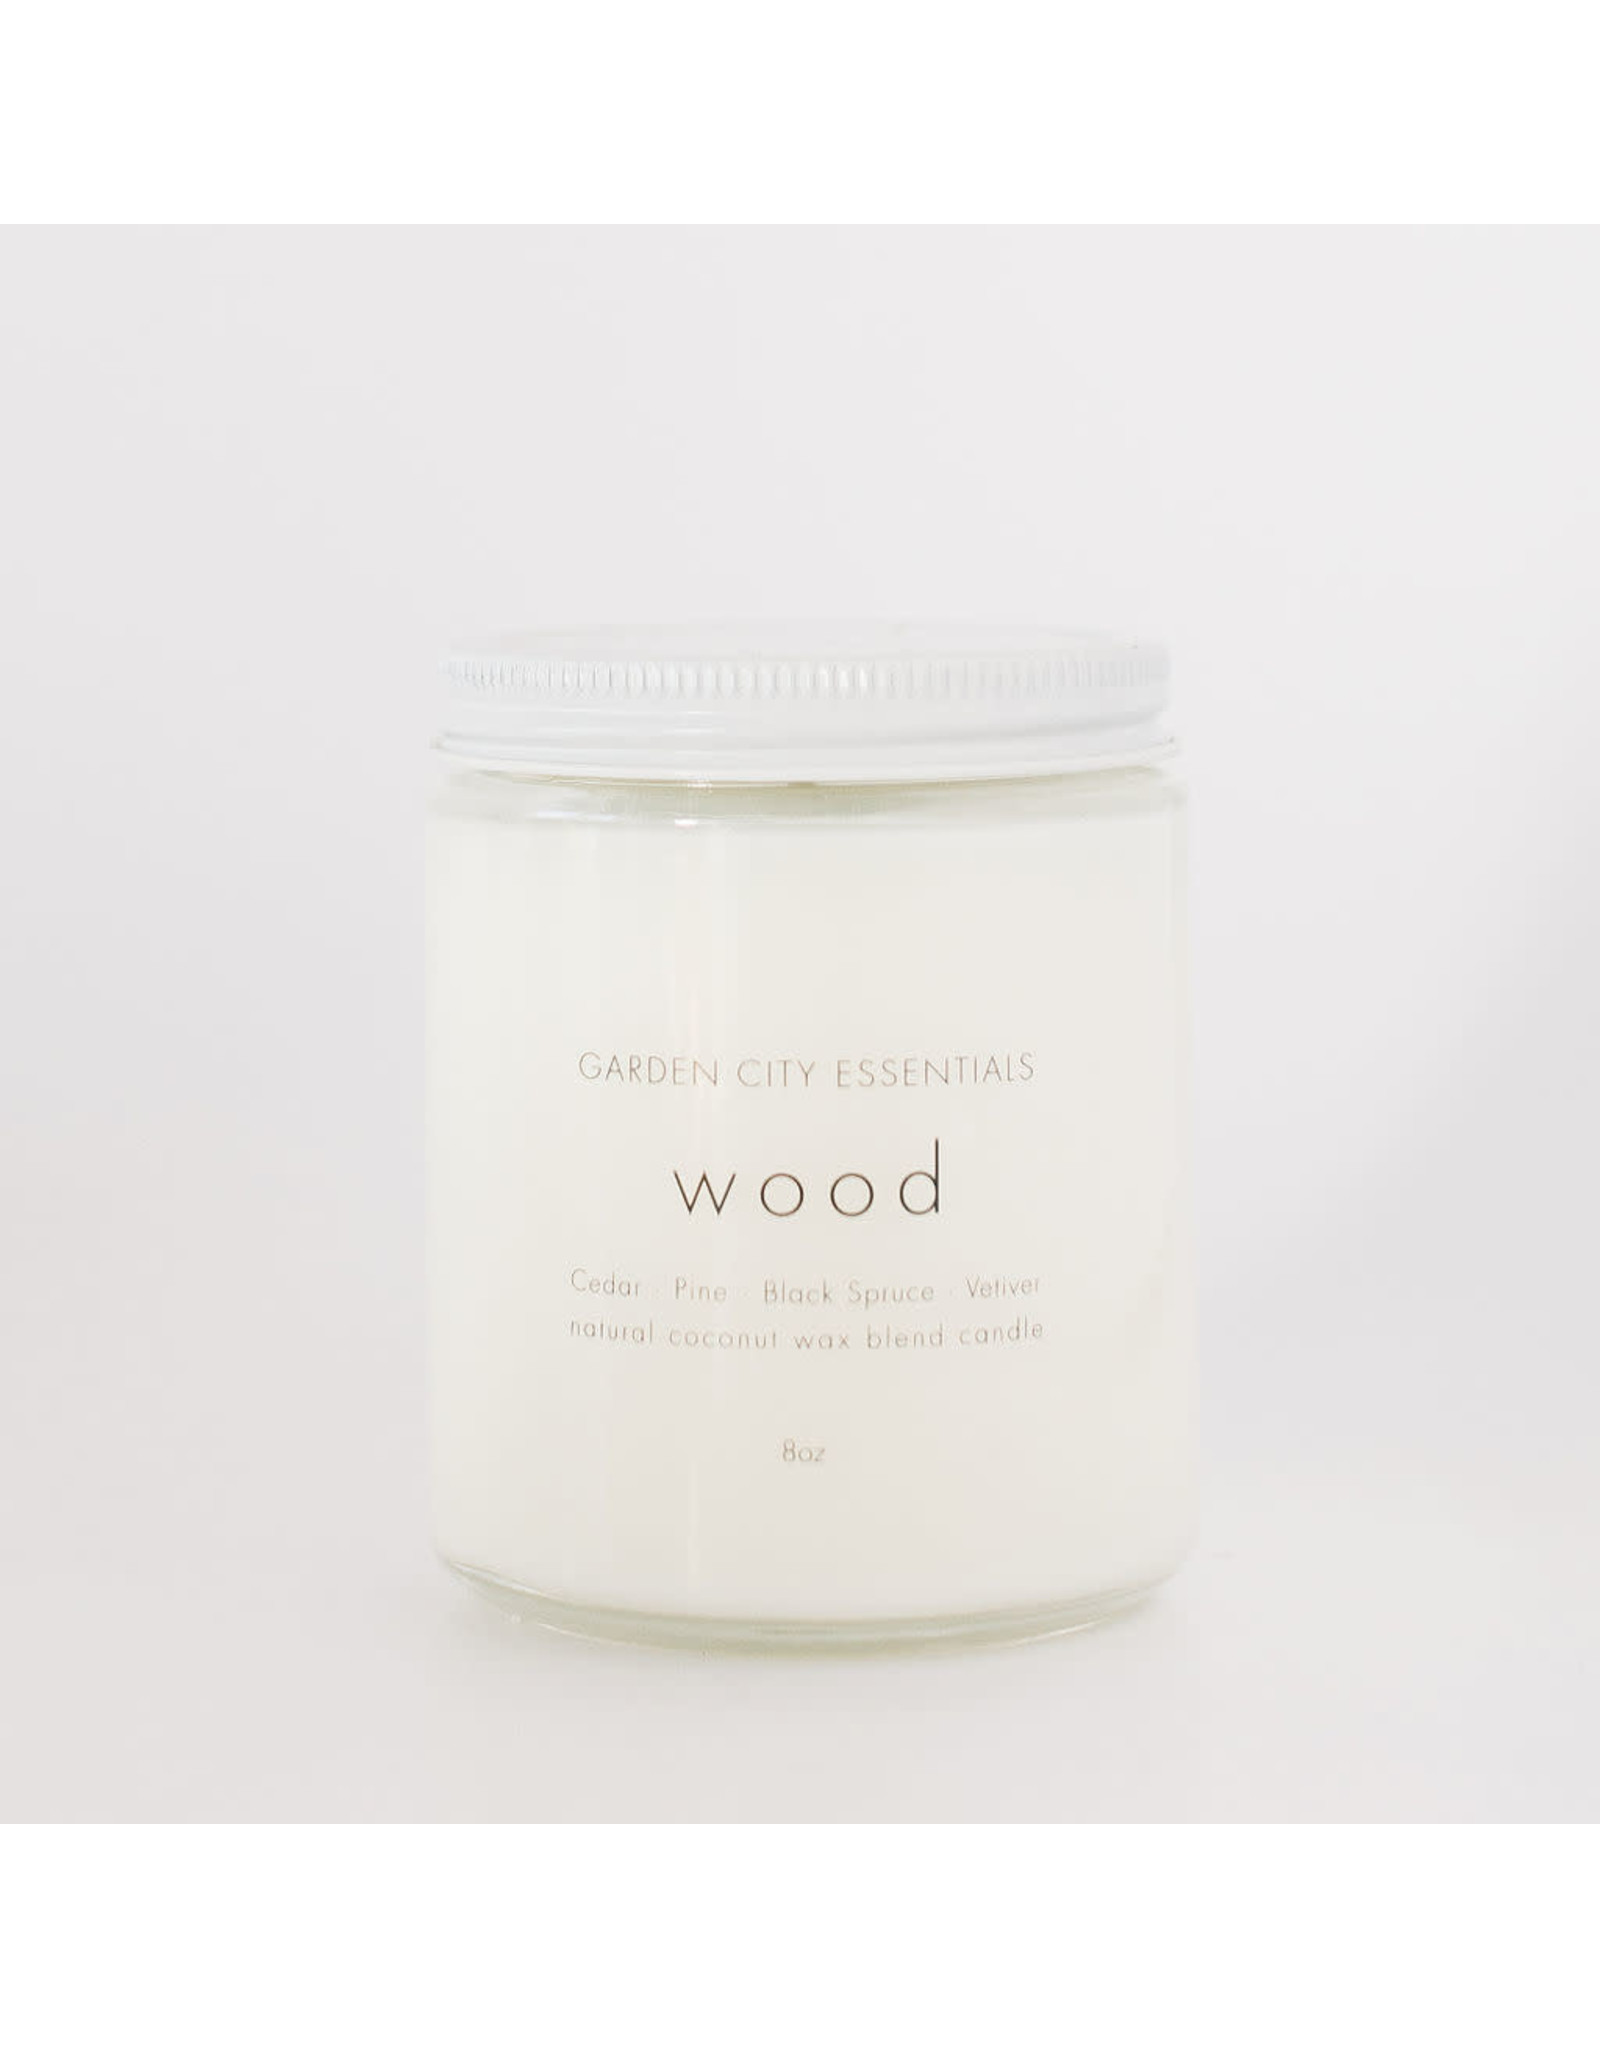 Garden City Essentials Wood Candle